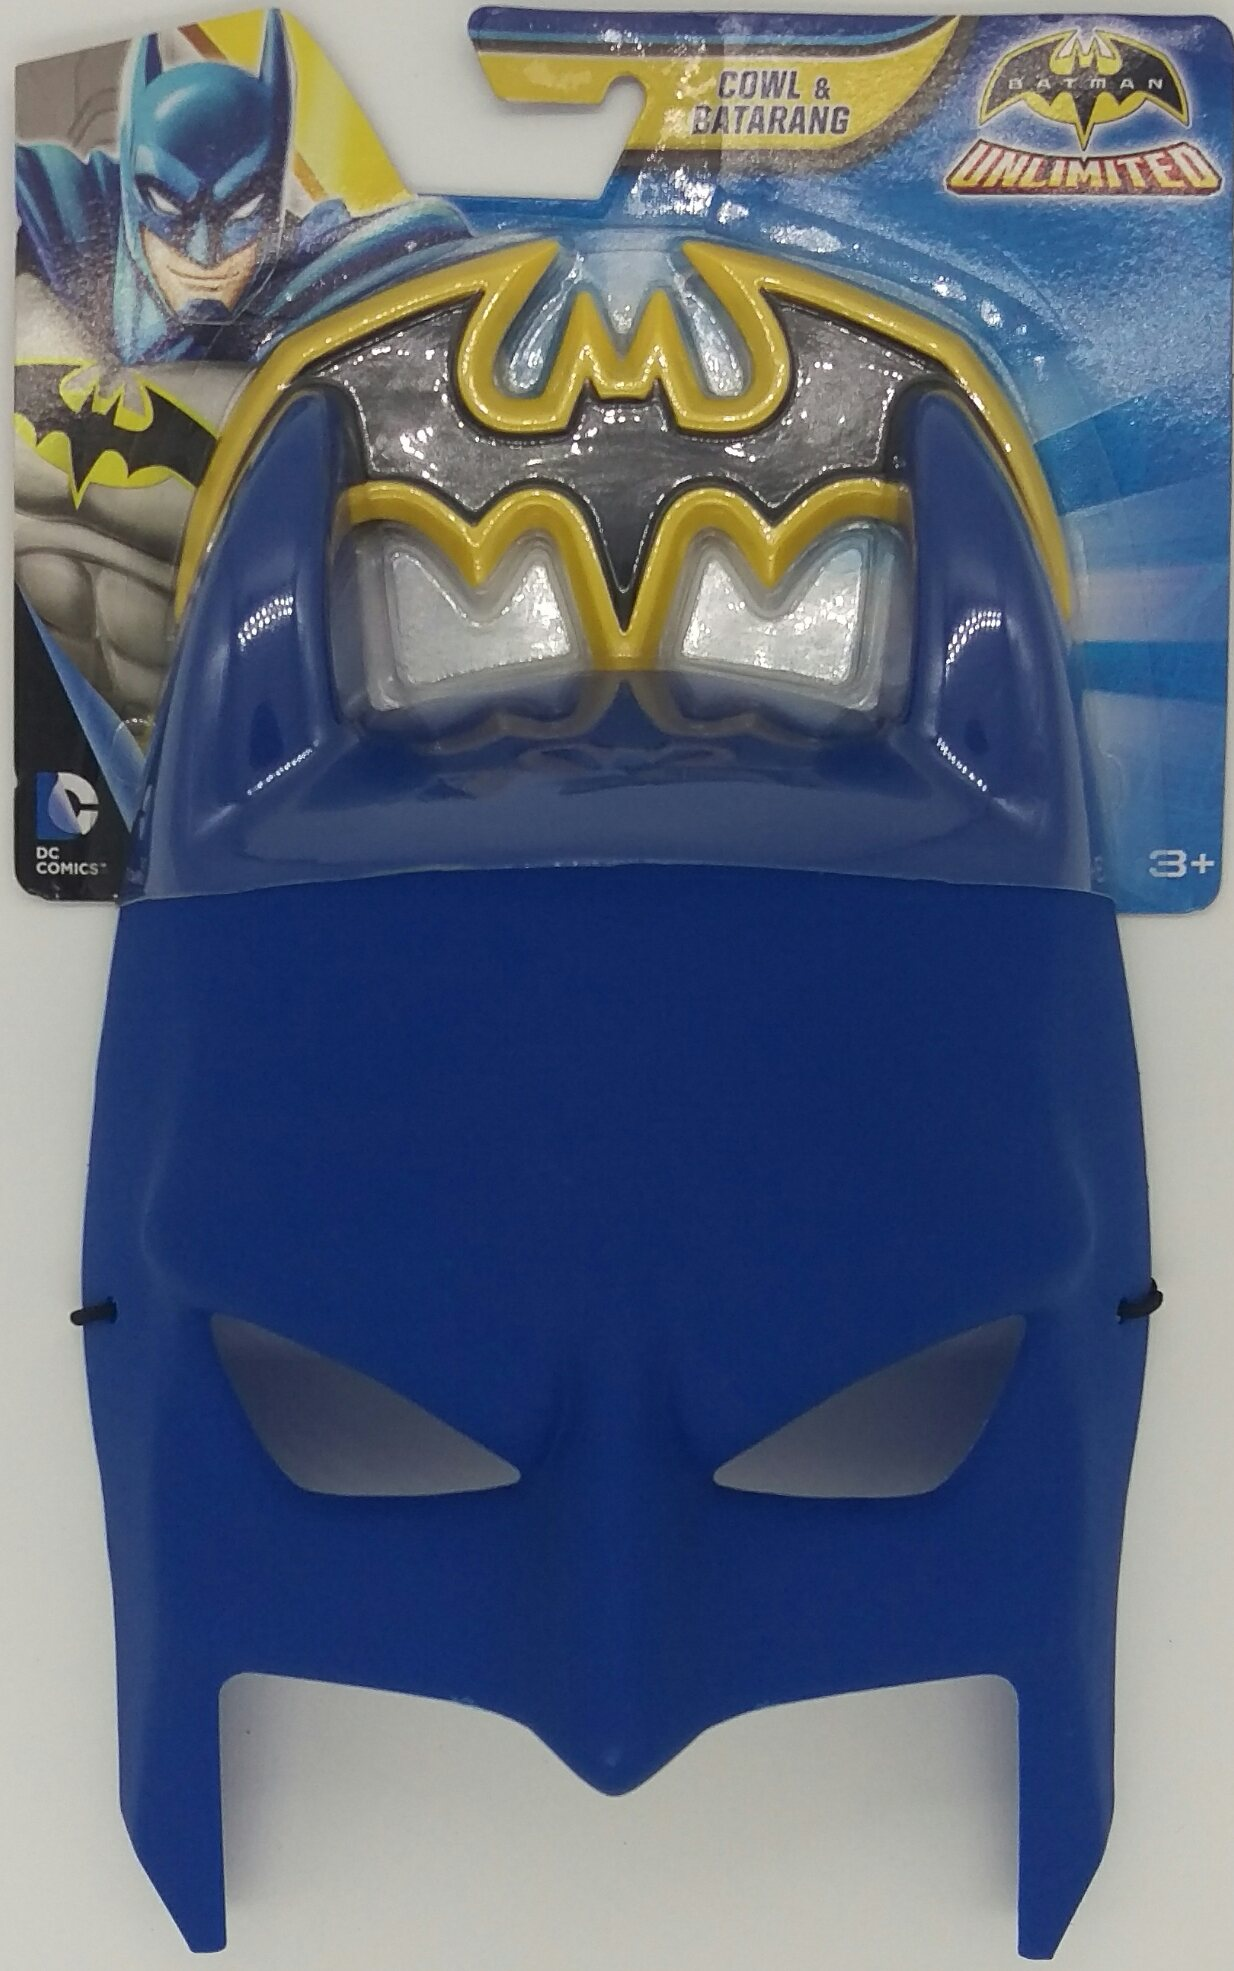 Batman Cowl and Batarang Role Playset by Mattel